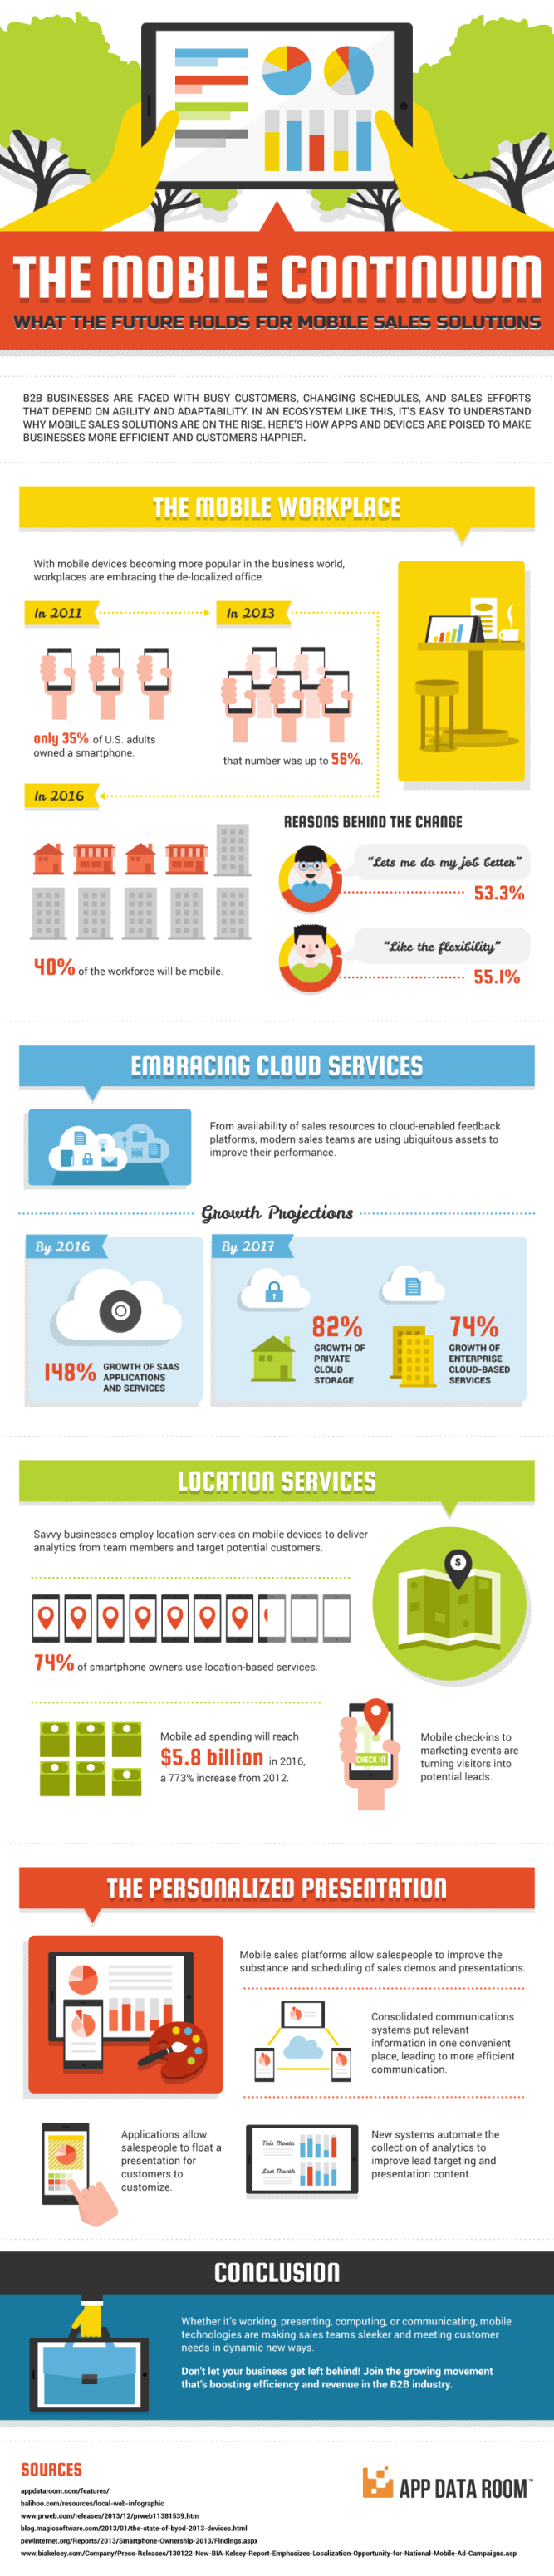 the-mobile-continuum-what-the-future-holds-for-mobile-sales-solutions-infographic